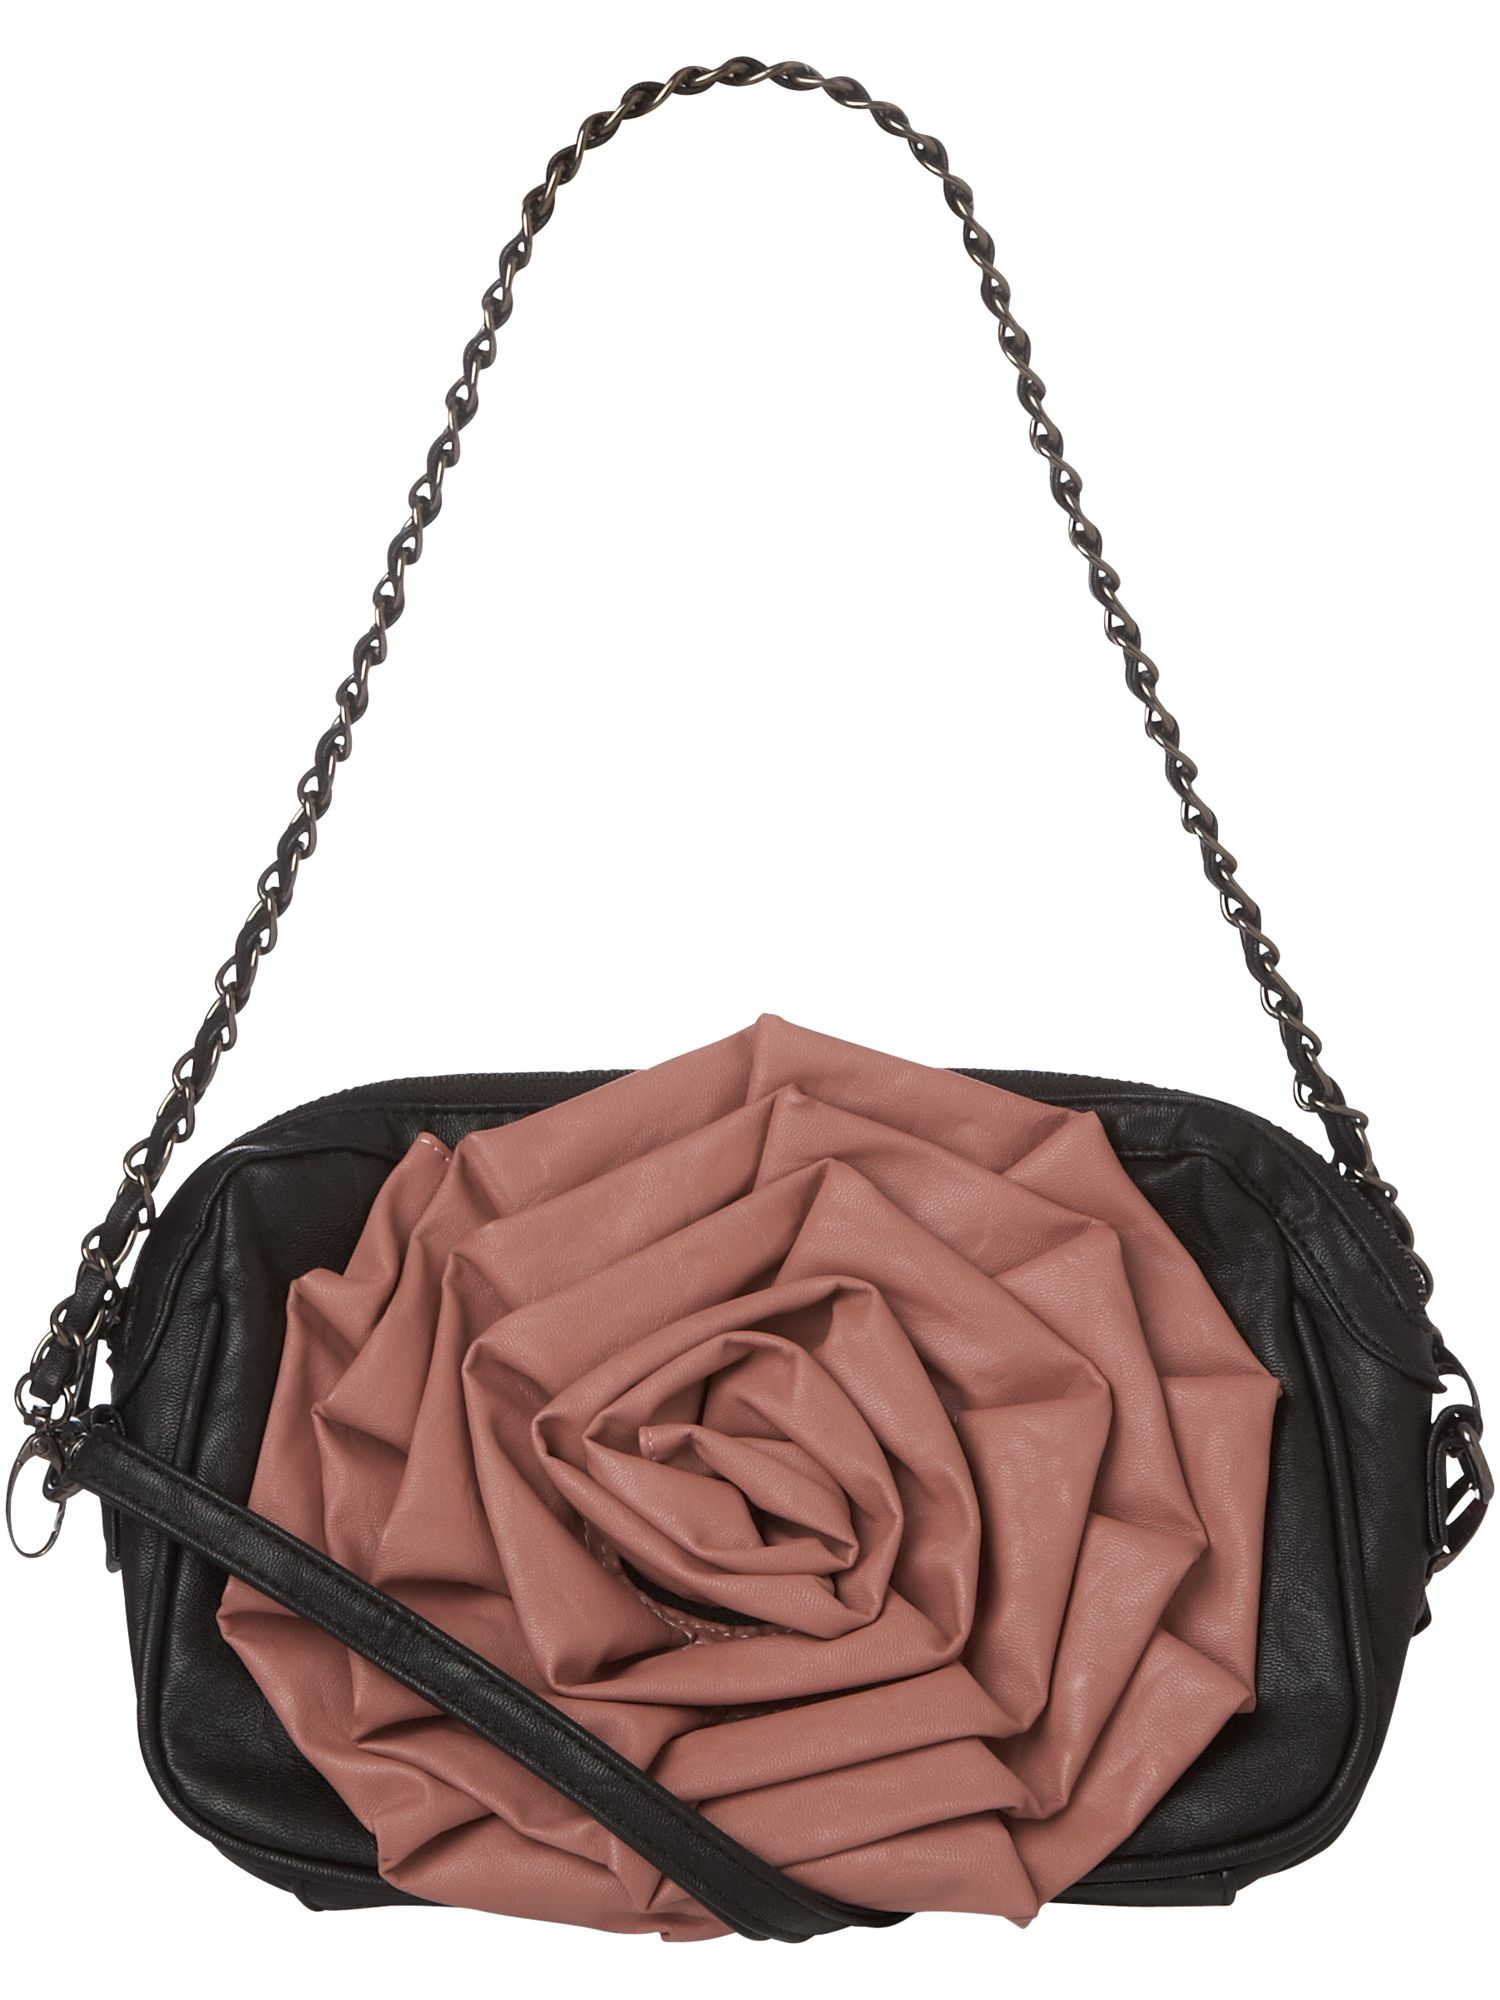 Max C Rose clutch bag product image